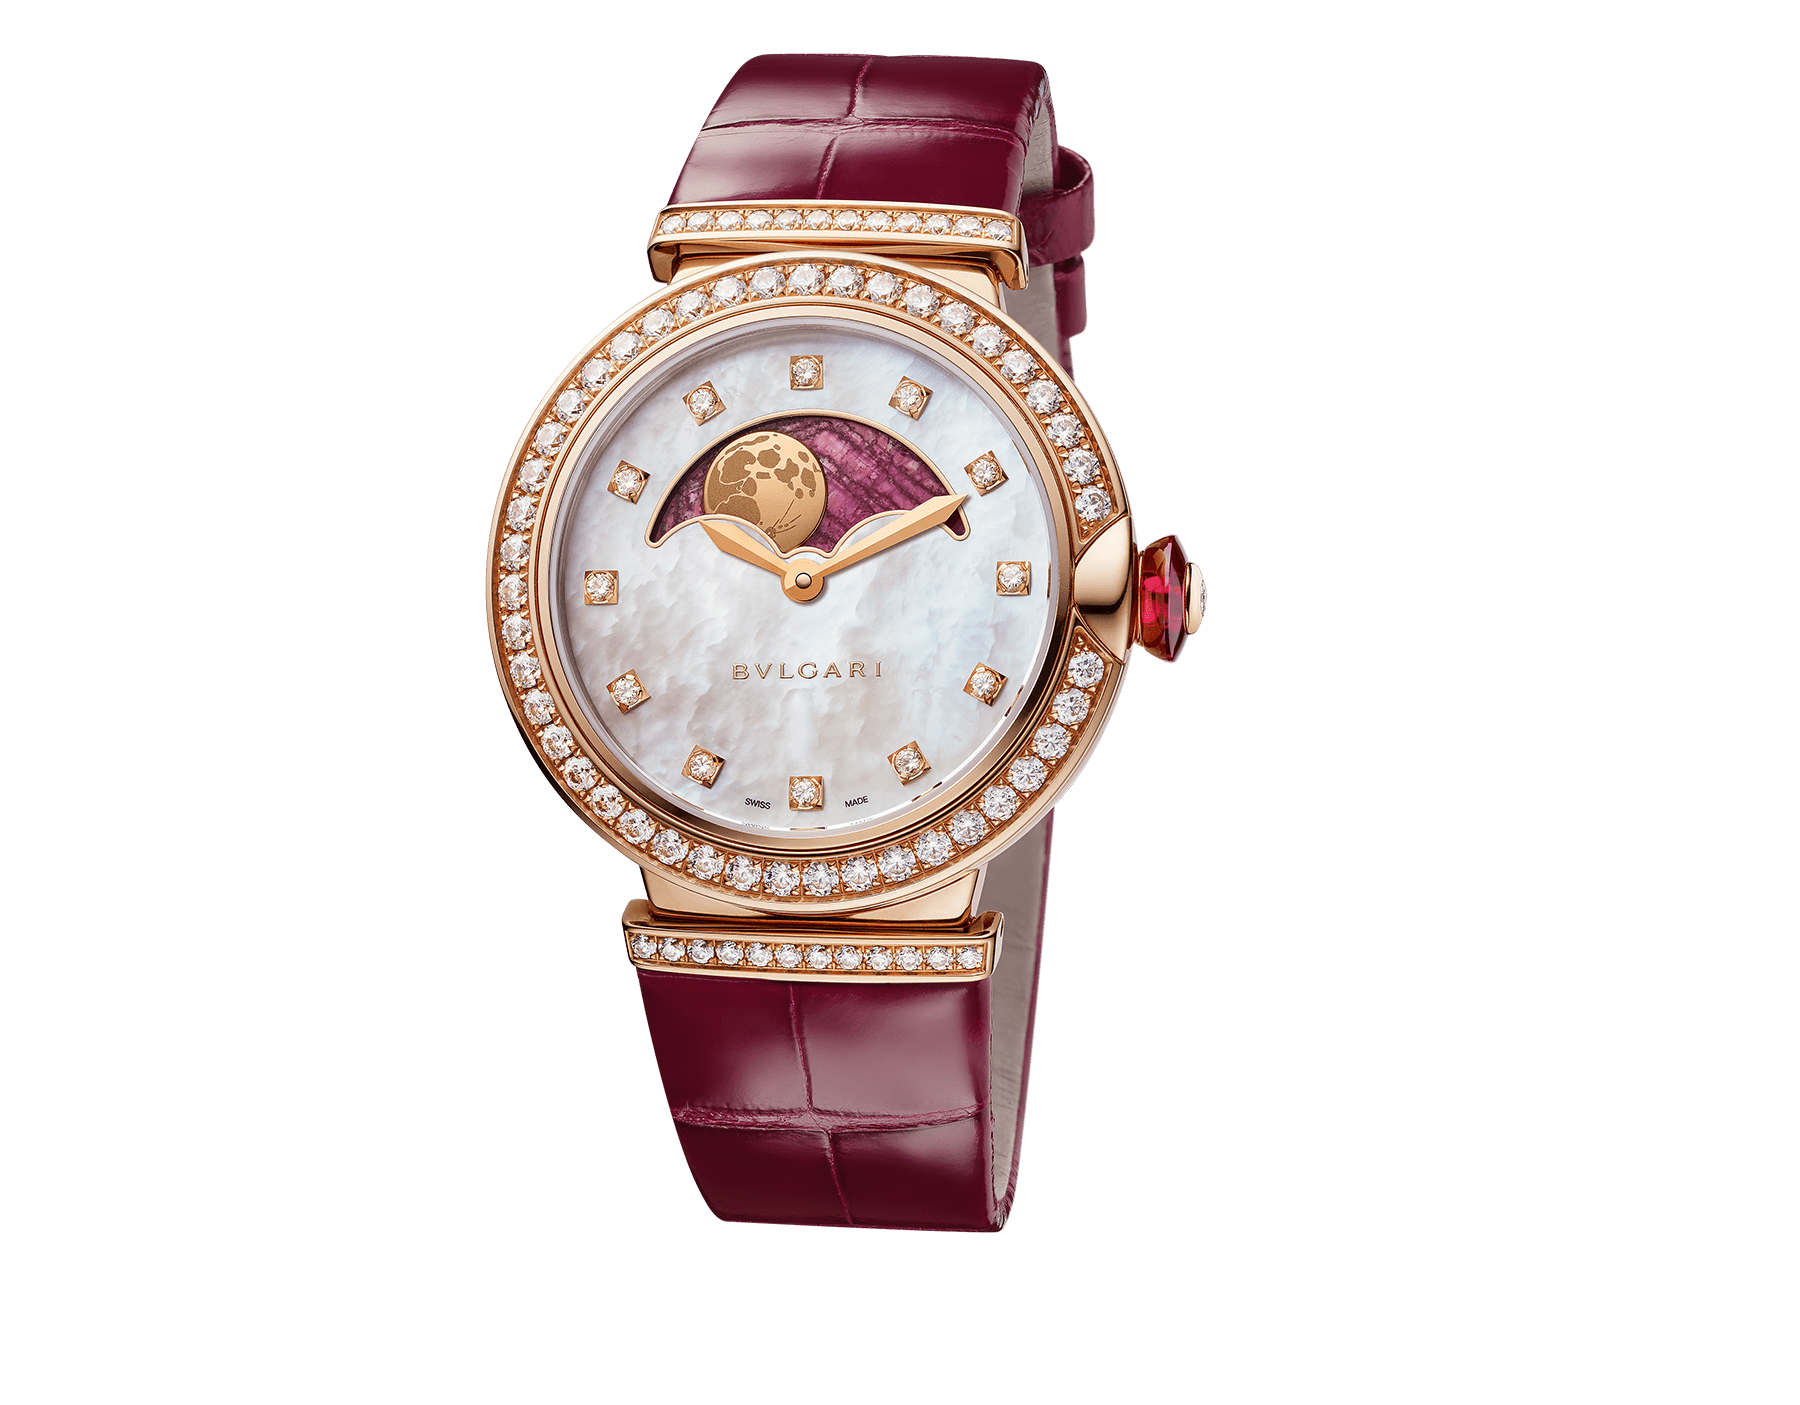 LVCEA Moon phase watch with 18 kt rose gold case set with diamonds, mother-of-pearl and heart of ruby dial, red alligator bracelet. 102686 image 2